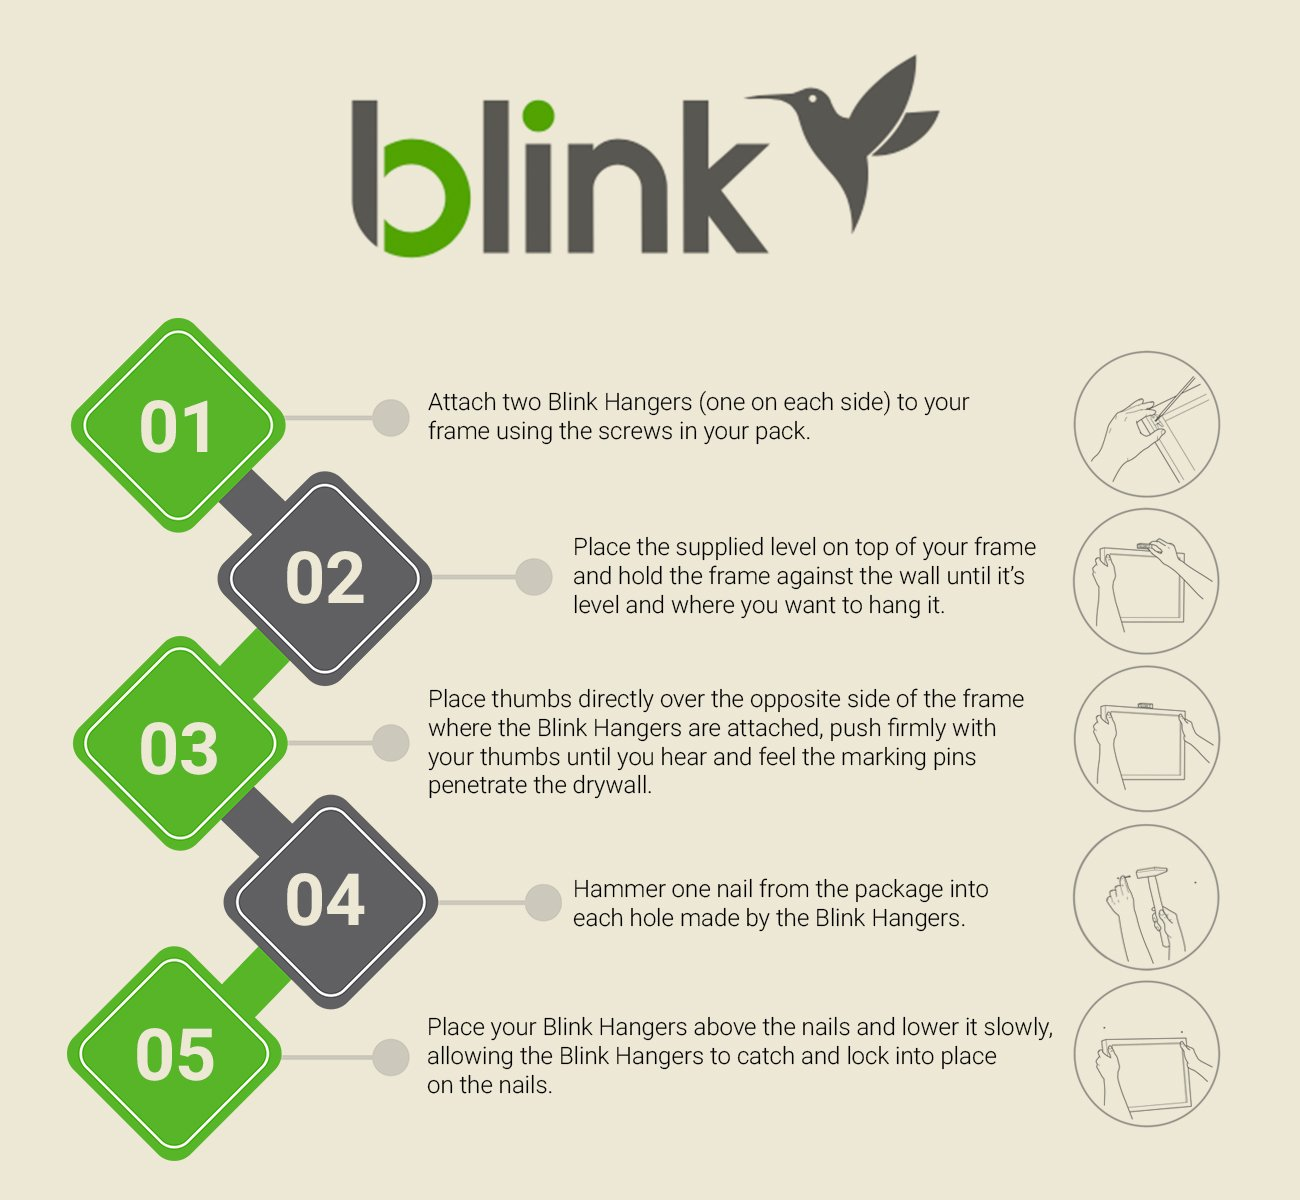 Blink Picture Hangers For Home & Office (24 Pack) - - Amazon.com